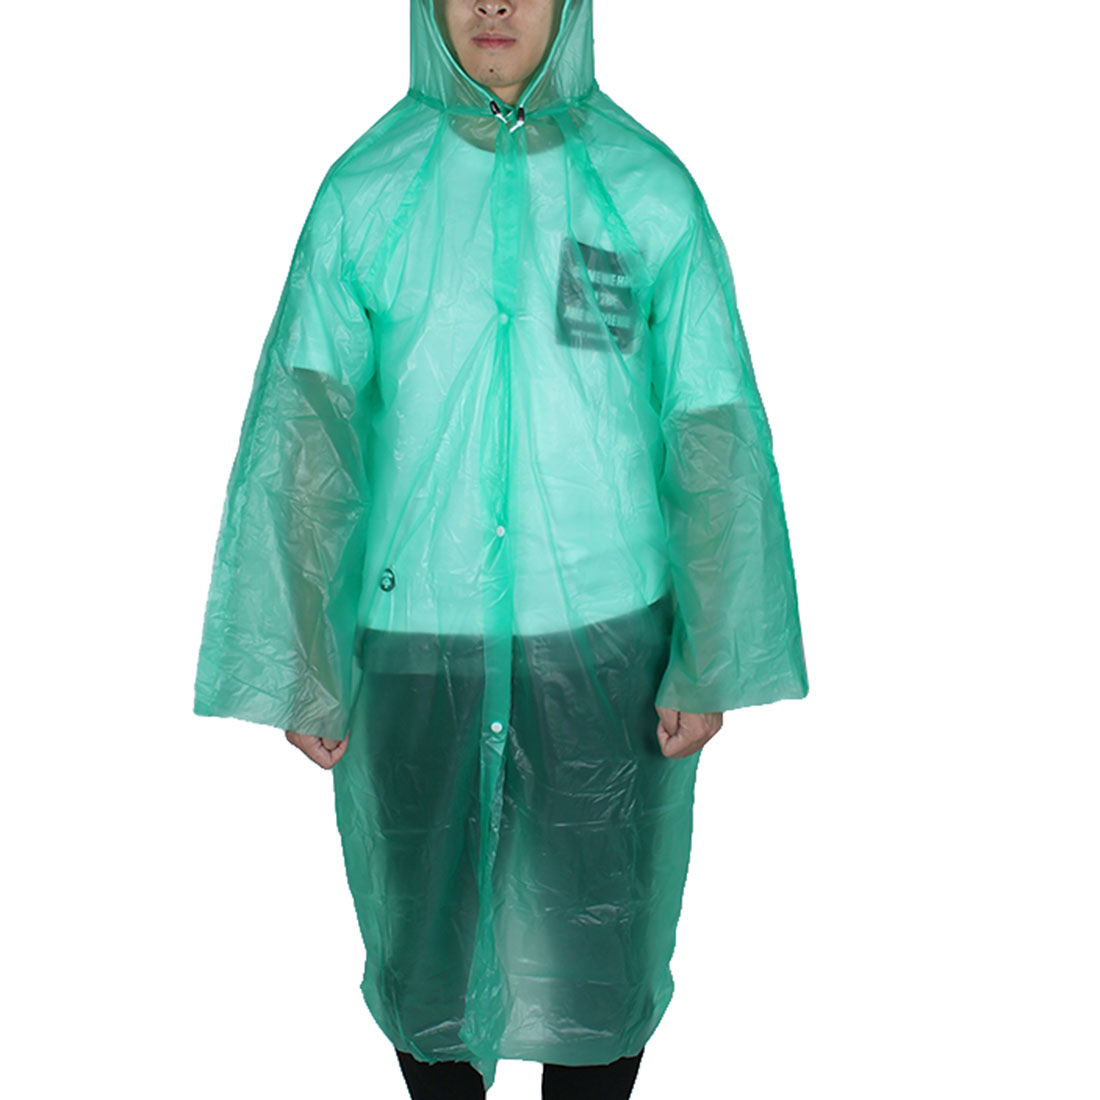 Green Disposable Emergency Plastic Raincoat Rain Coat Adult